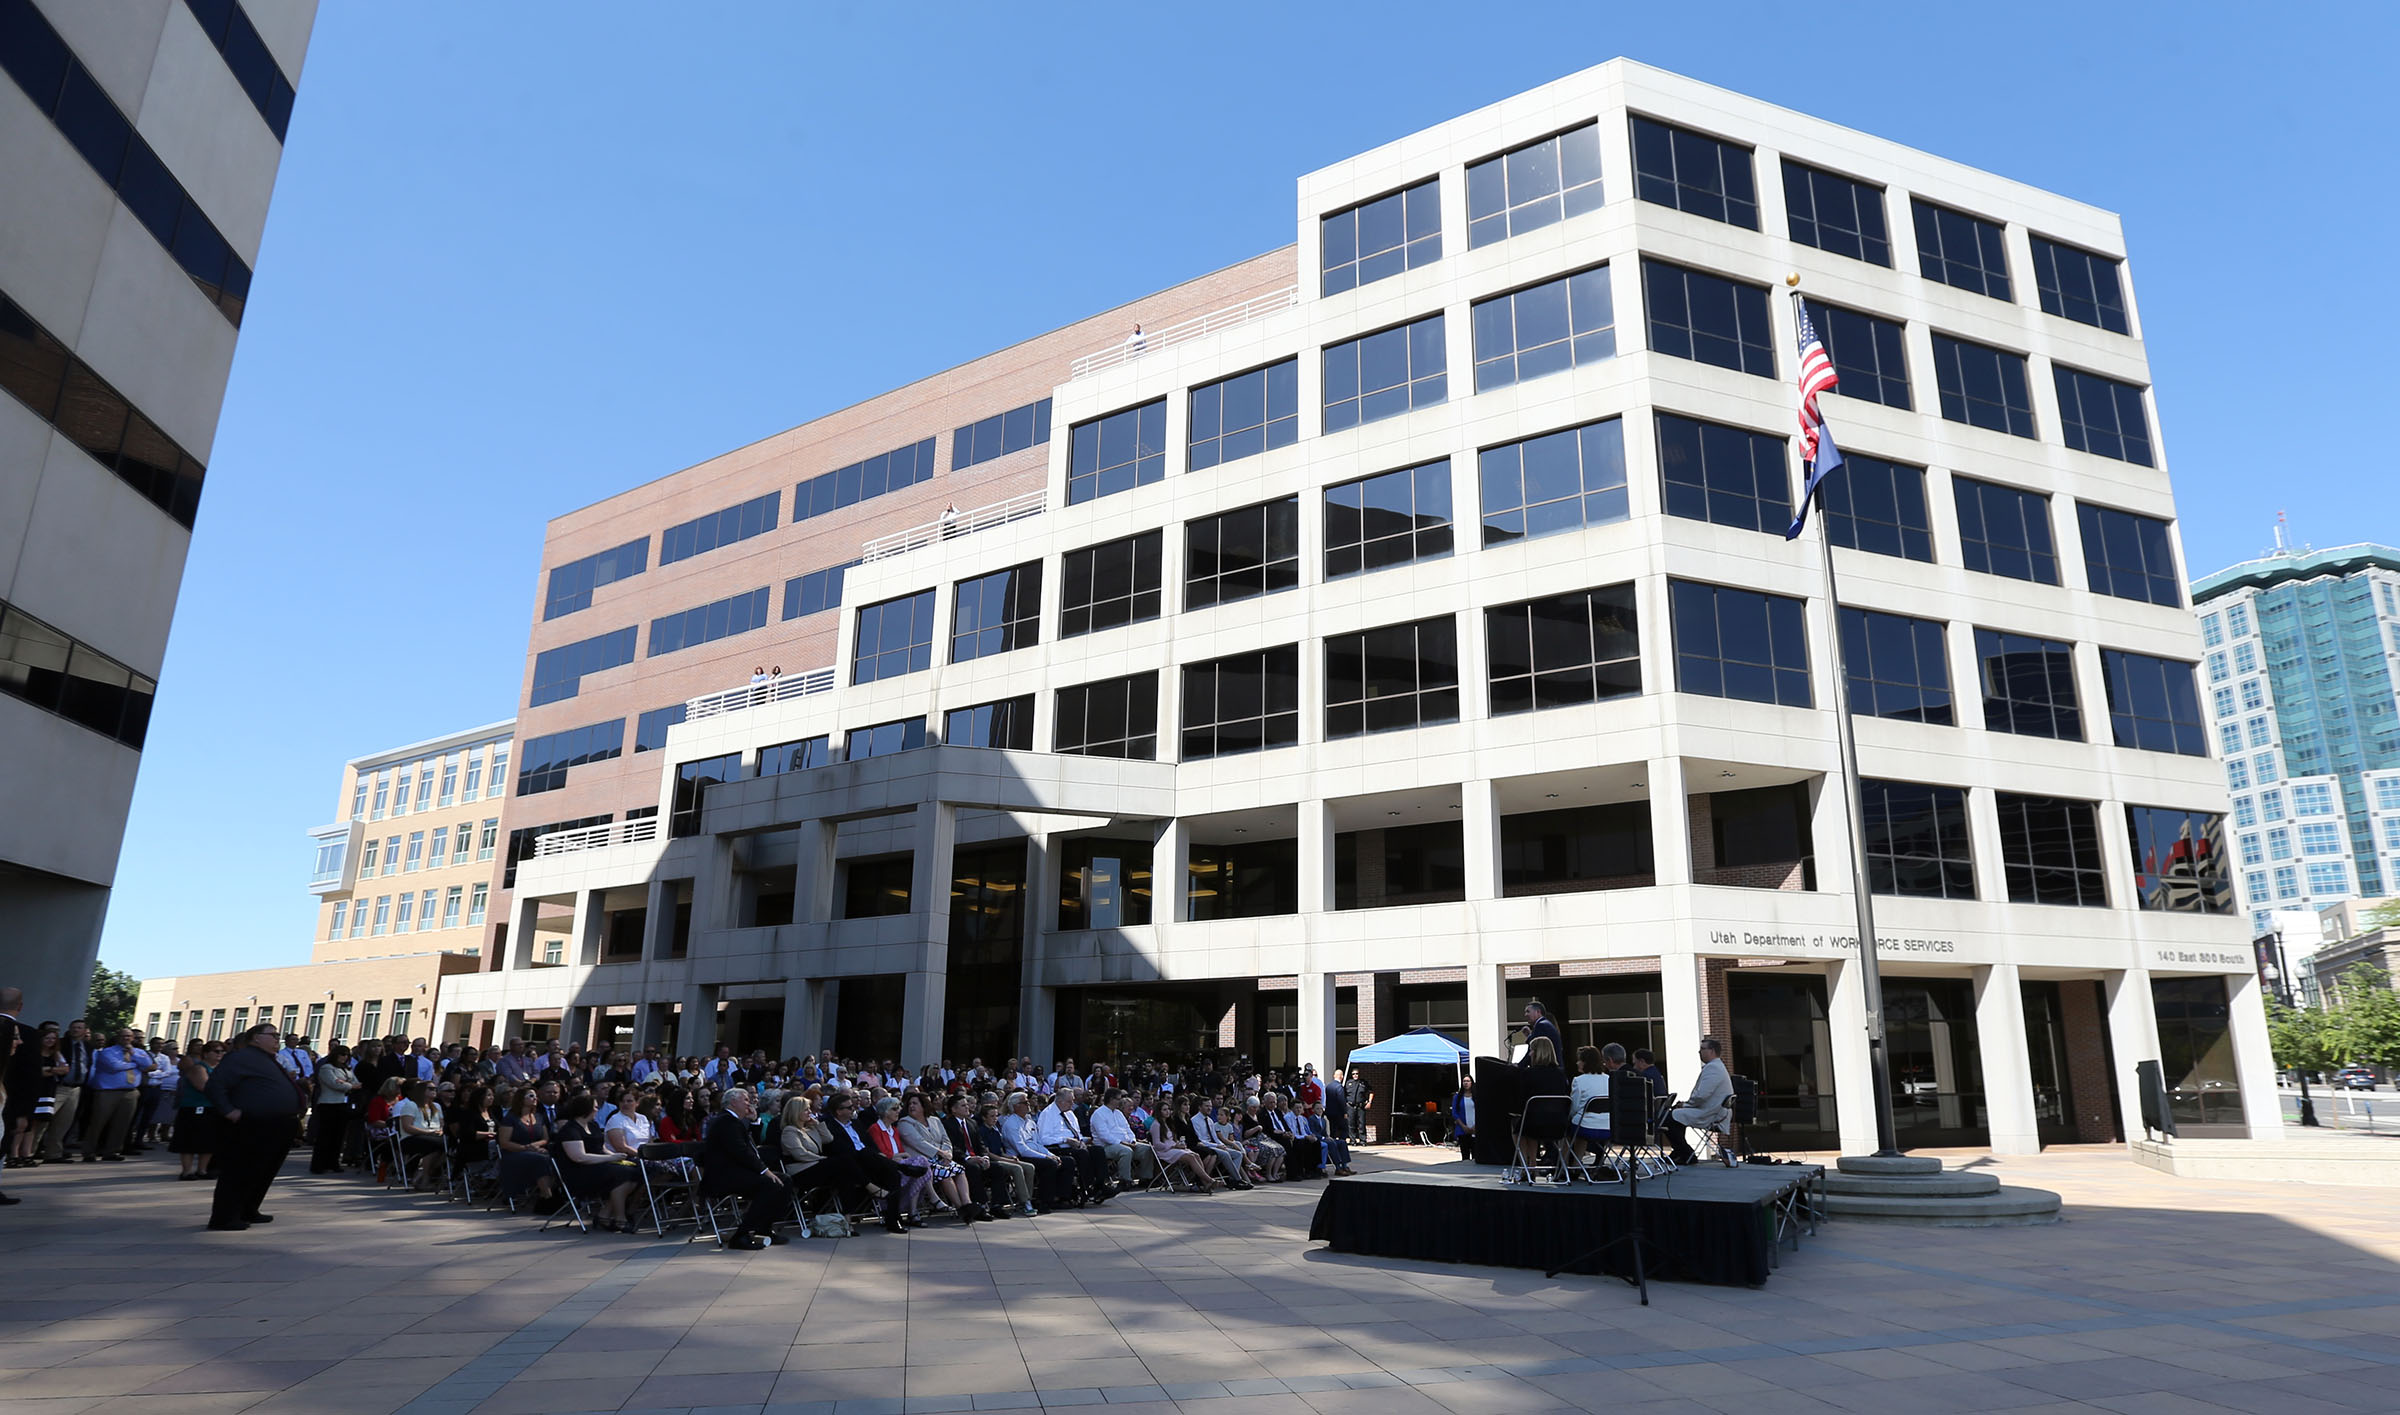 The Utah Department of Workforce Services' main administration building in Salt Lake City now bears the name of the late Gov. Olene S. Walker. The building was renamed during a ceremony celebrating the department's 20th anniversary on Thursday, June 29, 2017.